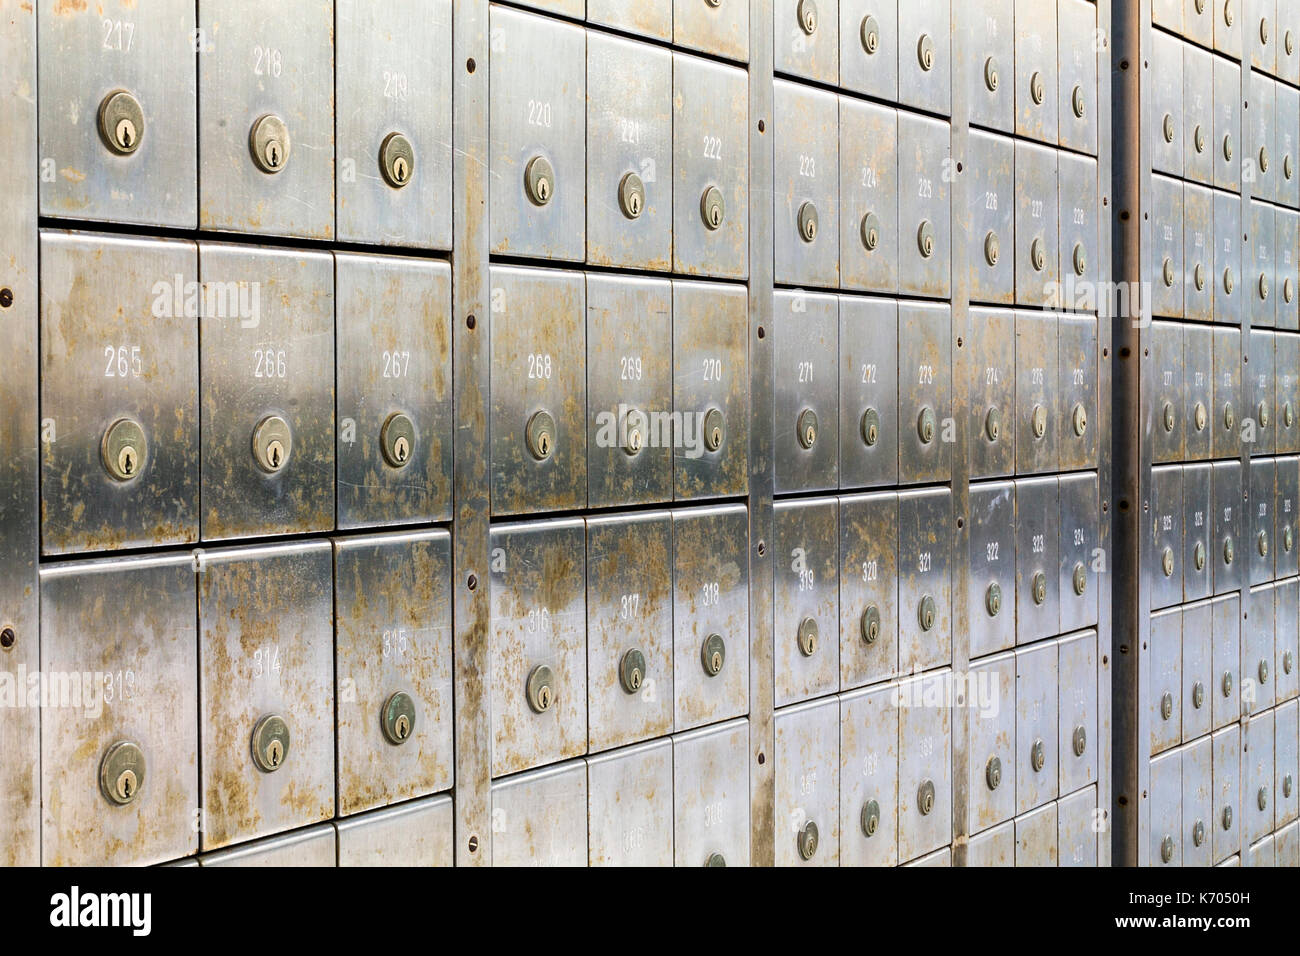 Bank Vault And Money Stock Photos Amp Bank Vault And Money